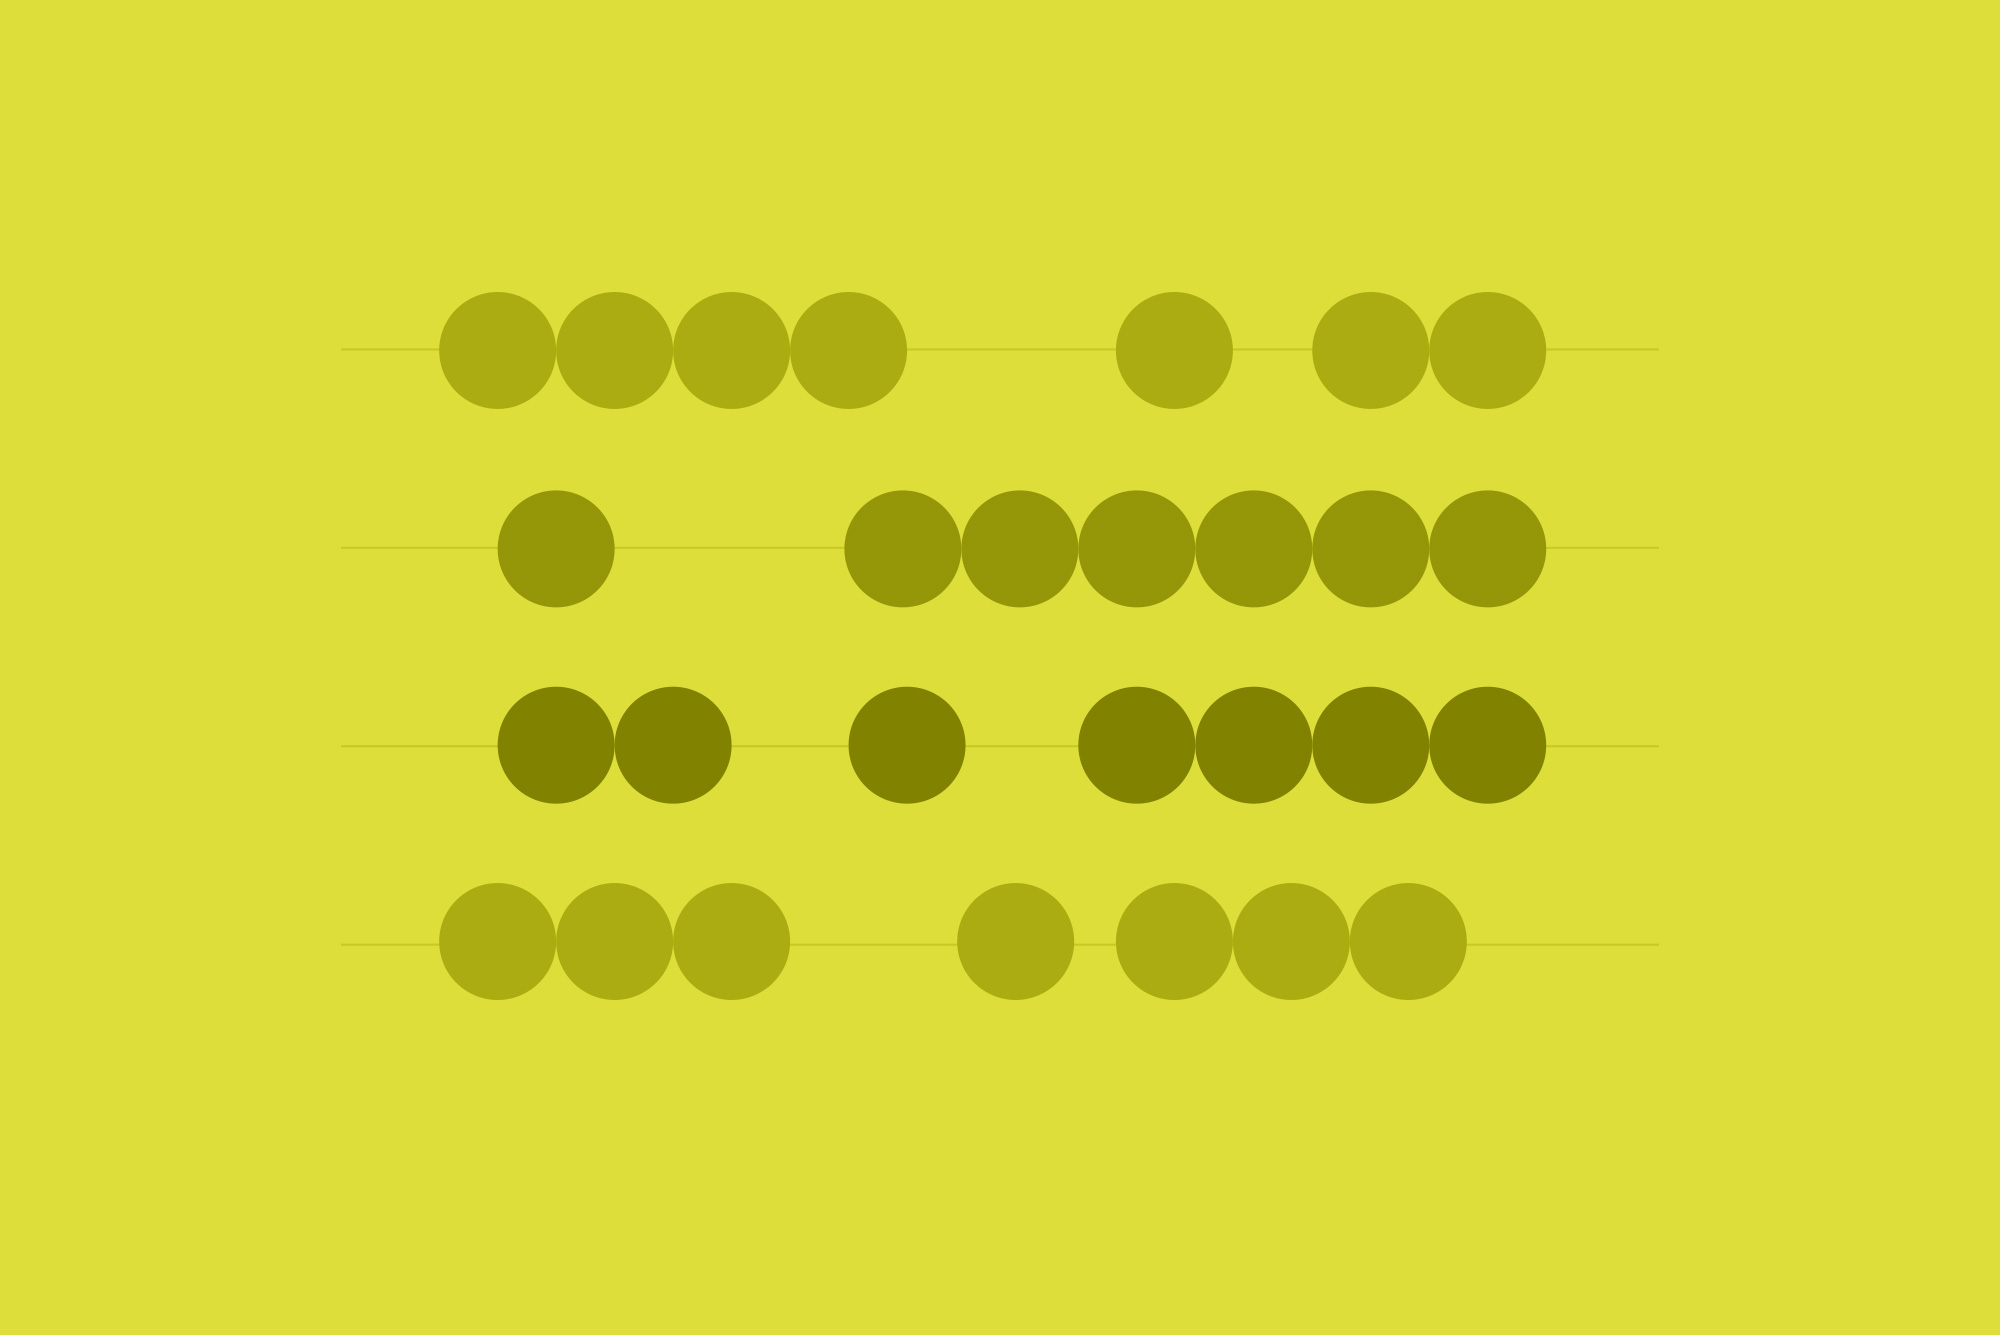 Dots on yellow background - Website budget